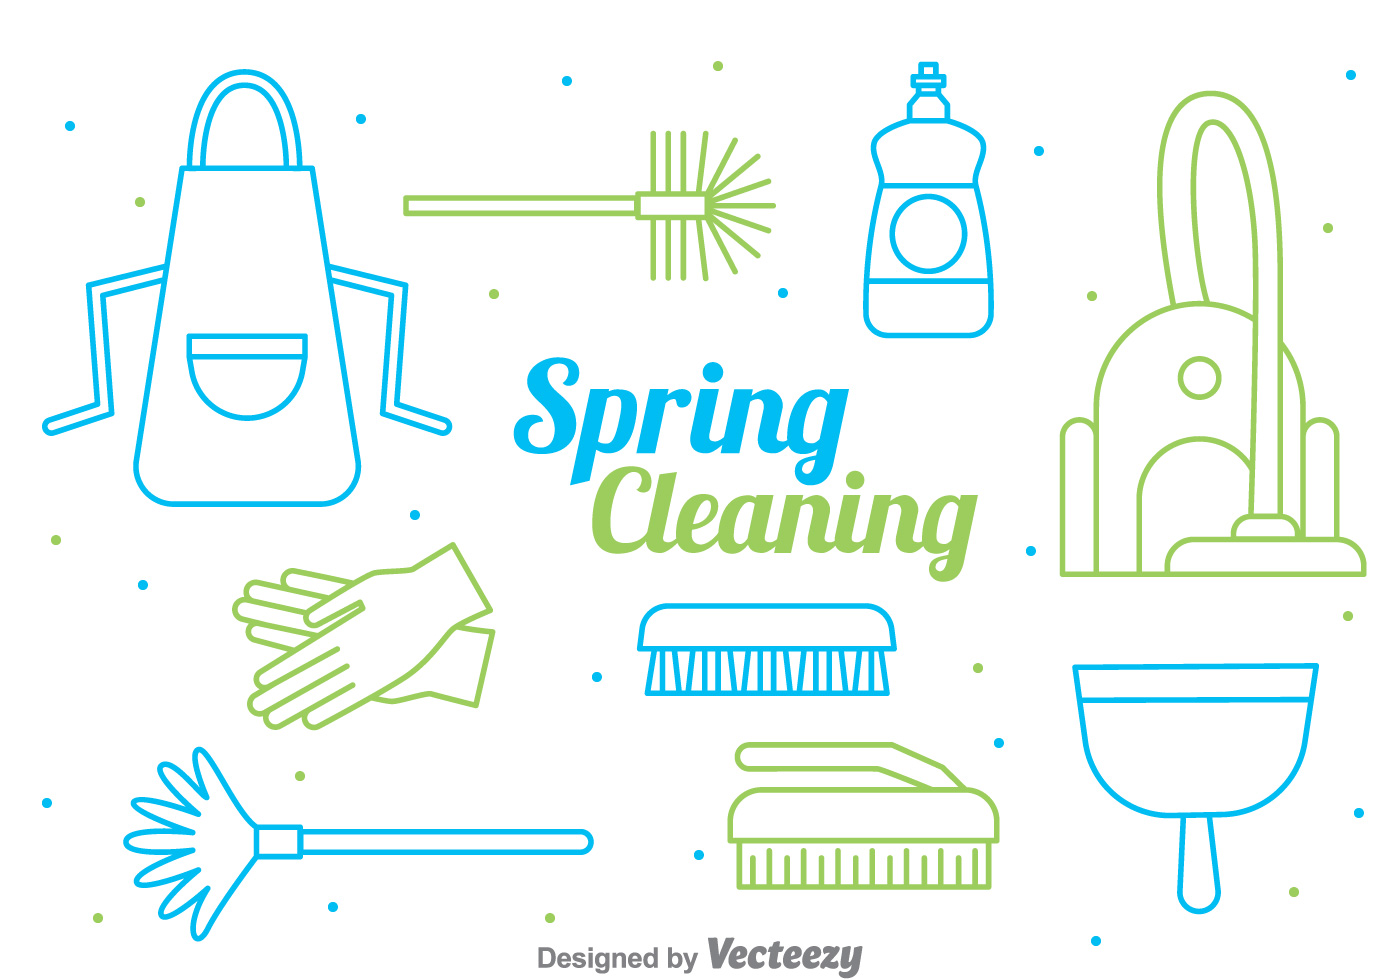 Spring Cleaning Line Style Vector Download Free Vector